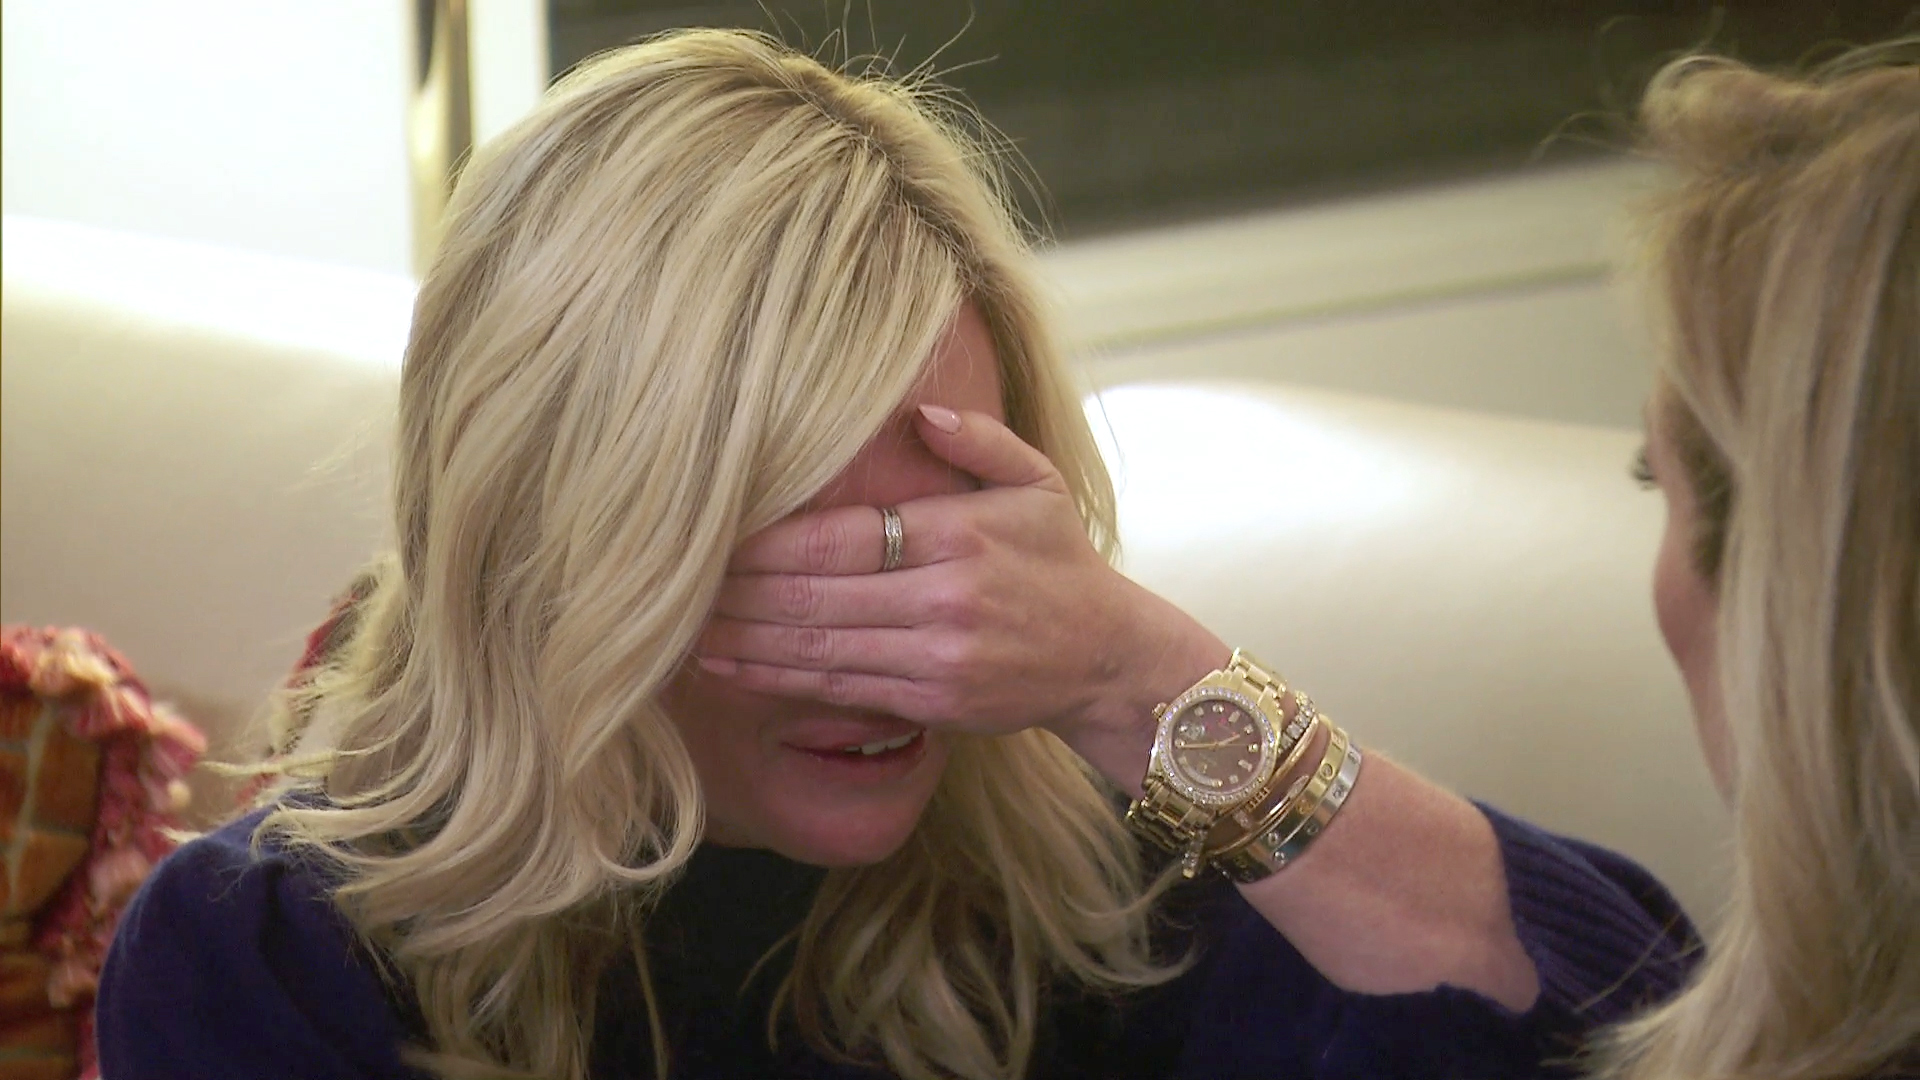 Tinsley Mortimer Rescues Dogs from Yulin Dog Meat Festival | The